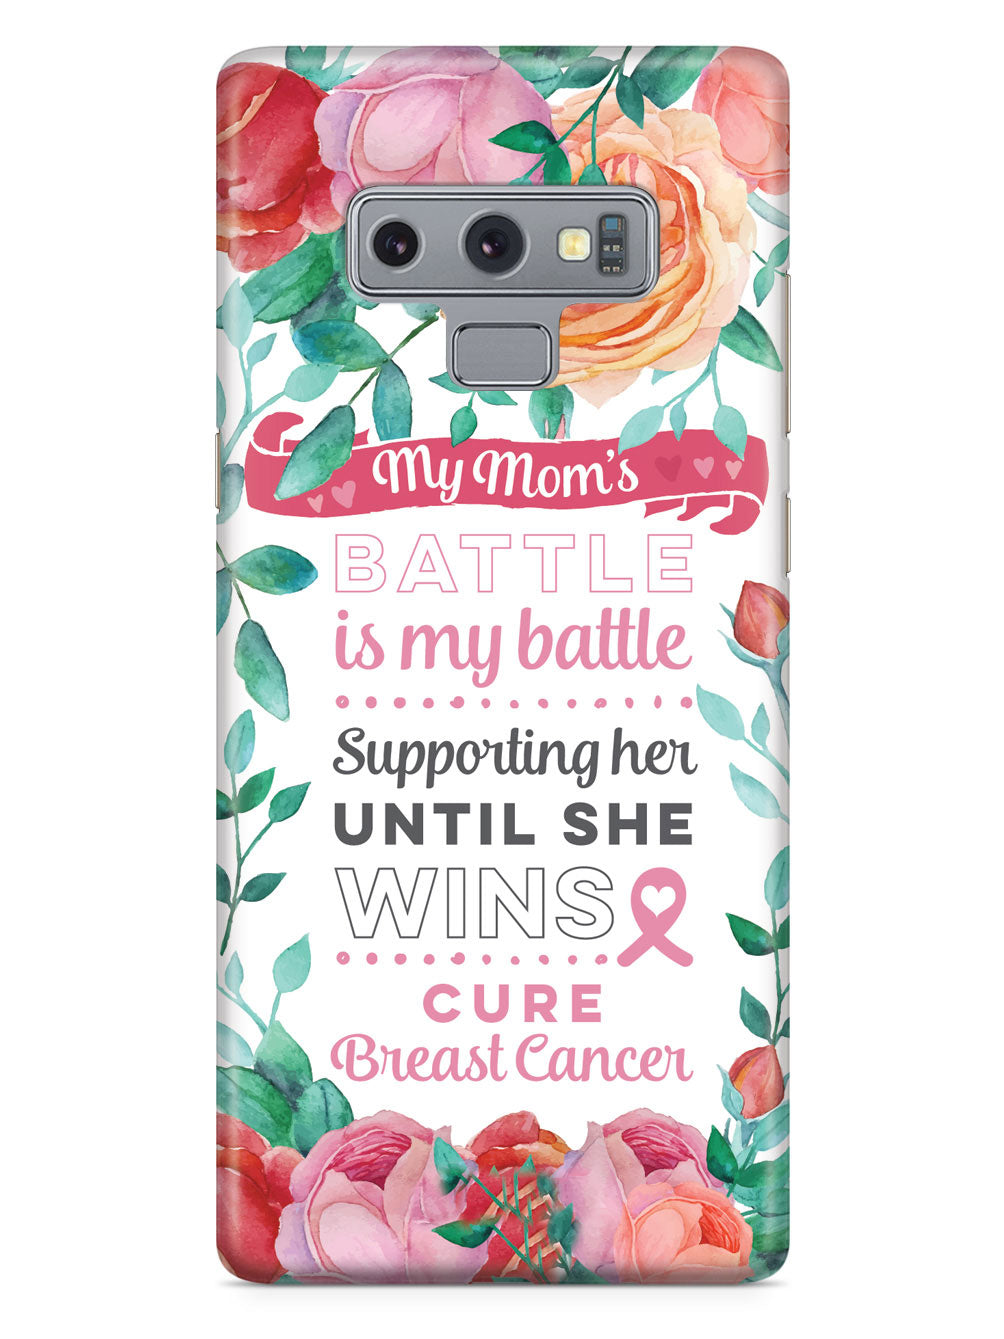 My Mom's Battle - Breast Cancer Awareness Case